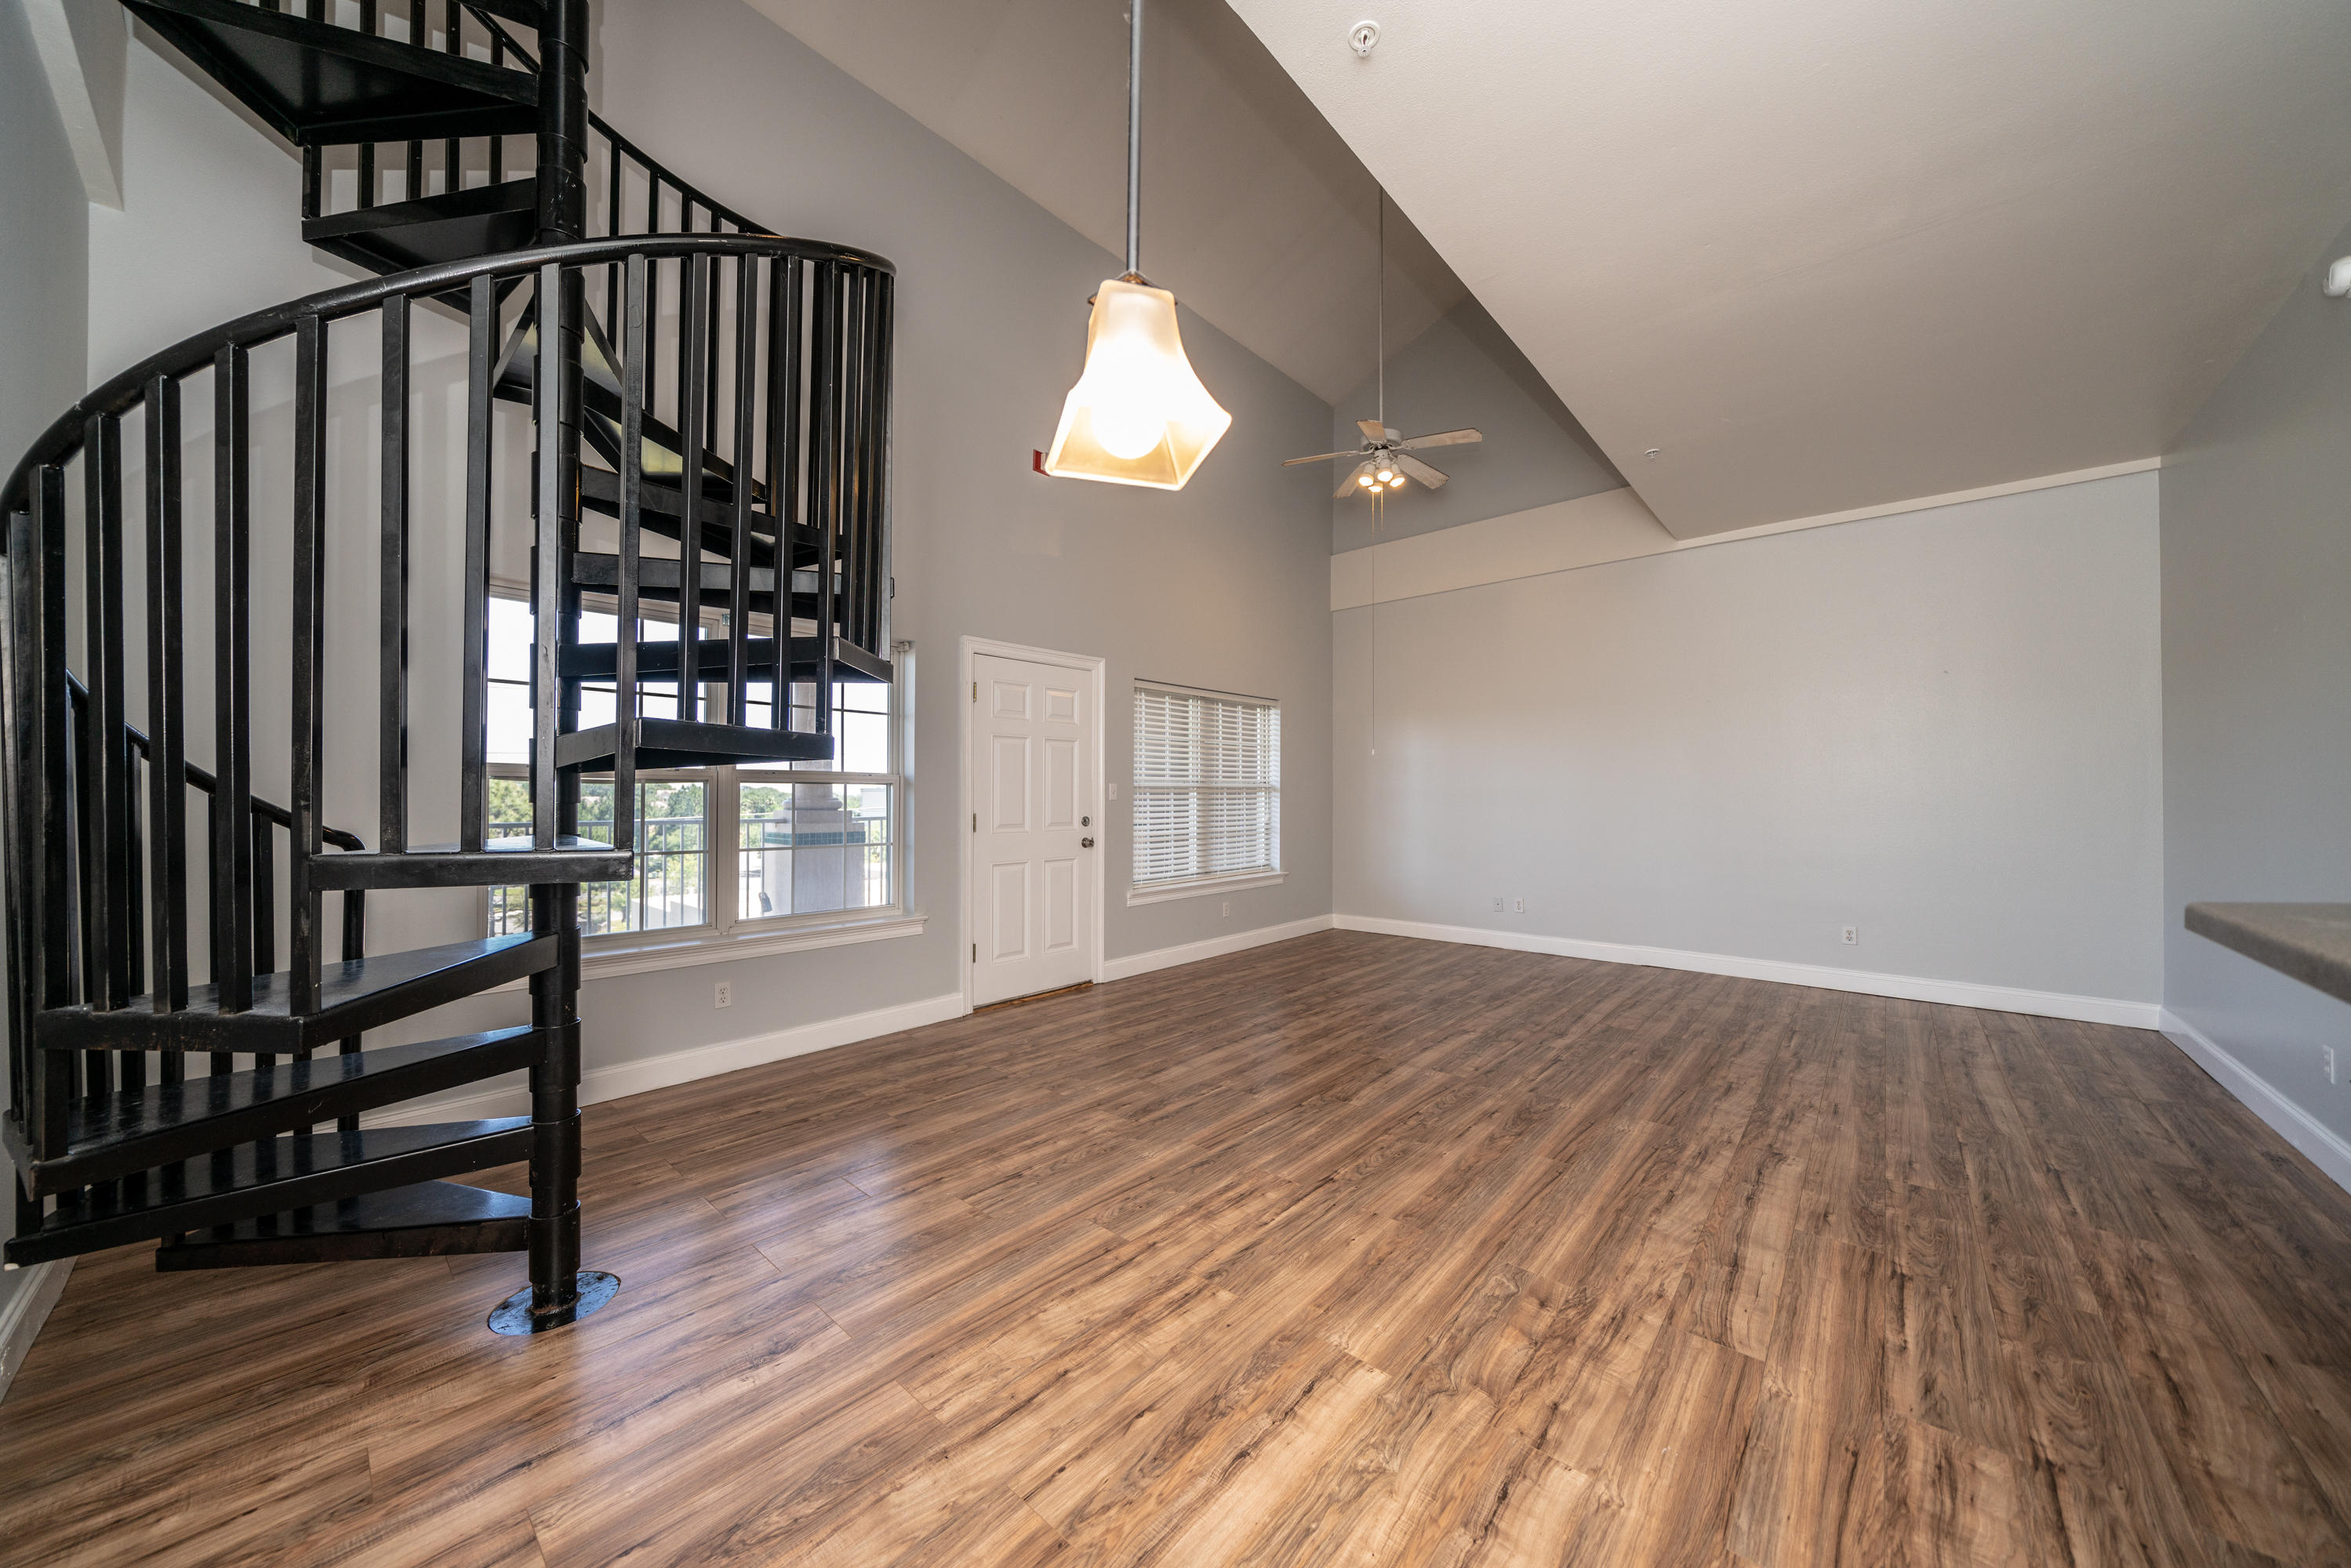 REDUCED!! SELLER IS MOTIVATED!!  This spacious, two story, 1801 square foot condo is centrally located between the Destin Commons and the Sandestin Outlets and just minutes from the beautiful beaches of the Emerald Coast! This condo features 20 foot, vaulted ceilings offering an open living/dining area complete with a breakfast bar overlooking the kitchen. This unique home includes a spiral staircase leading up to the spacious loft including an en suite bath with a stand up shower, a bathtub, a walk in closet.  The entire condo has been painted top to bottom has brand new stainless steel appliances and new carpet throughout!  (View the Virtual Tour) WAIT THERE IS MORE!Downstairs, the large master bedroom features an en suite master bathroom complete with a stand up shower, jacuzzi tub a double vanity sink and a walk in closet. The master bedroom and the other guest bedroom access the balcony through the french doors! Did I mention the 3rd full bathroom in the hallway and plenty of parking for your guests? Whether you are looking for a great starter home, a second home or an investment property (great long term rental, currently rented at $1850.00/month), this home is offered less than $125.00 per square foot and is worth every penny. Call me for your showing today!